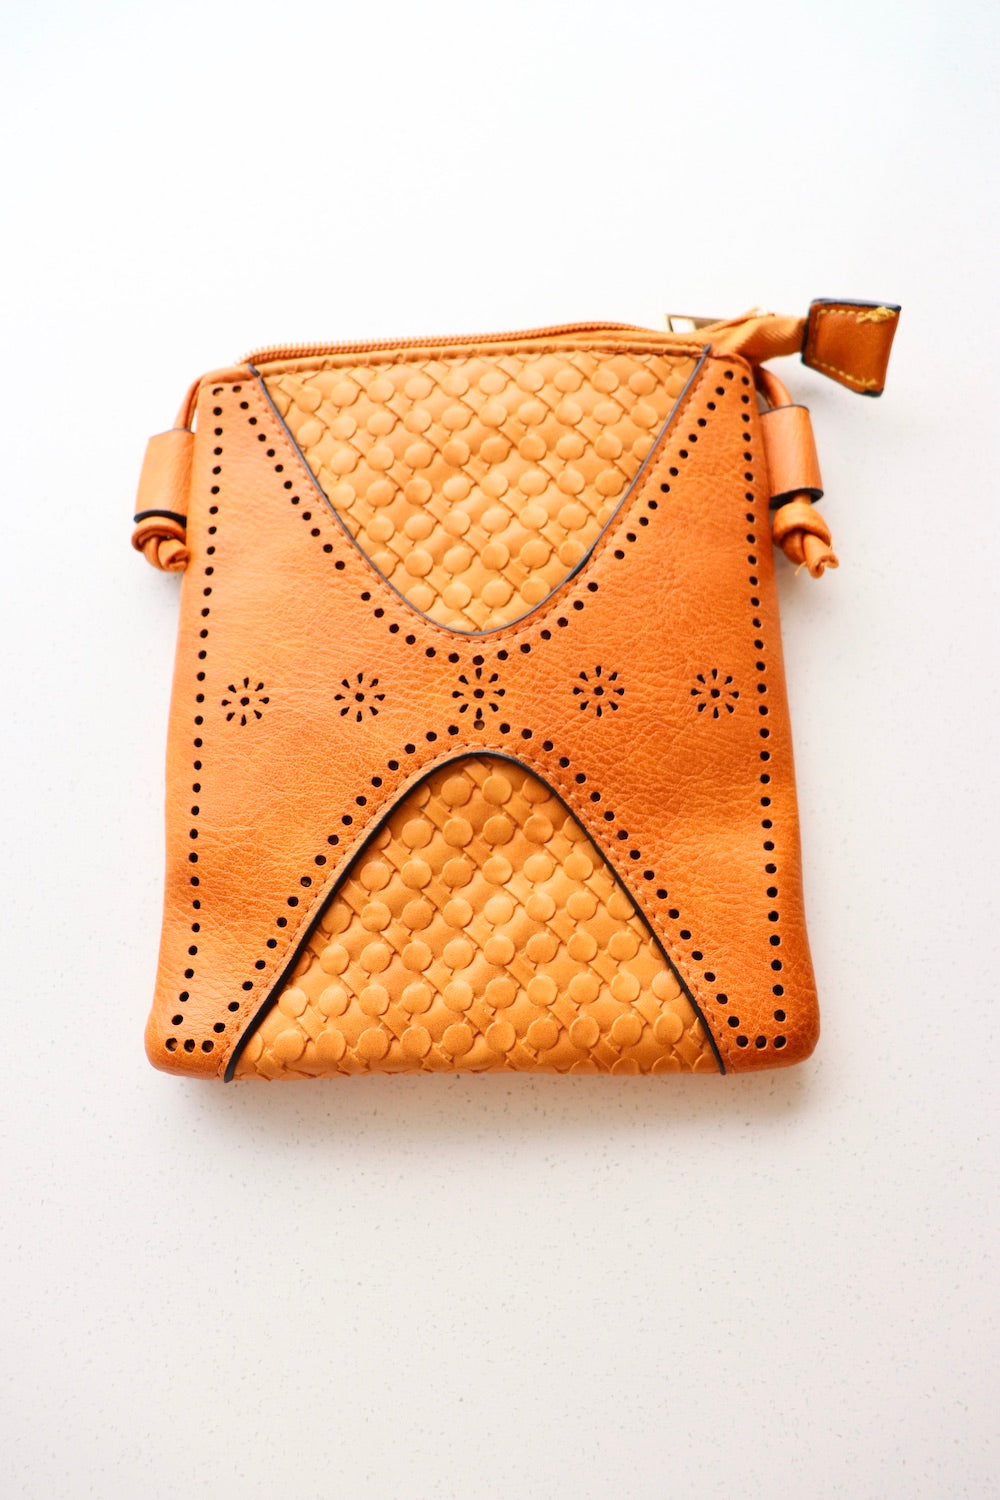 Small Faux Leather Bag in Tan